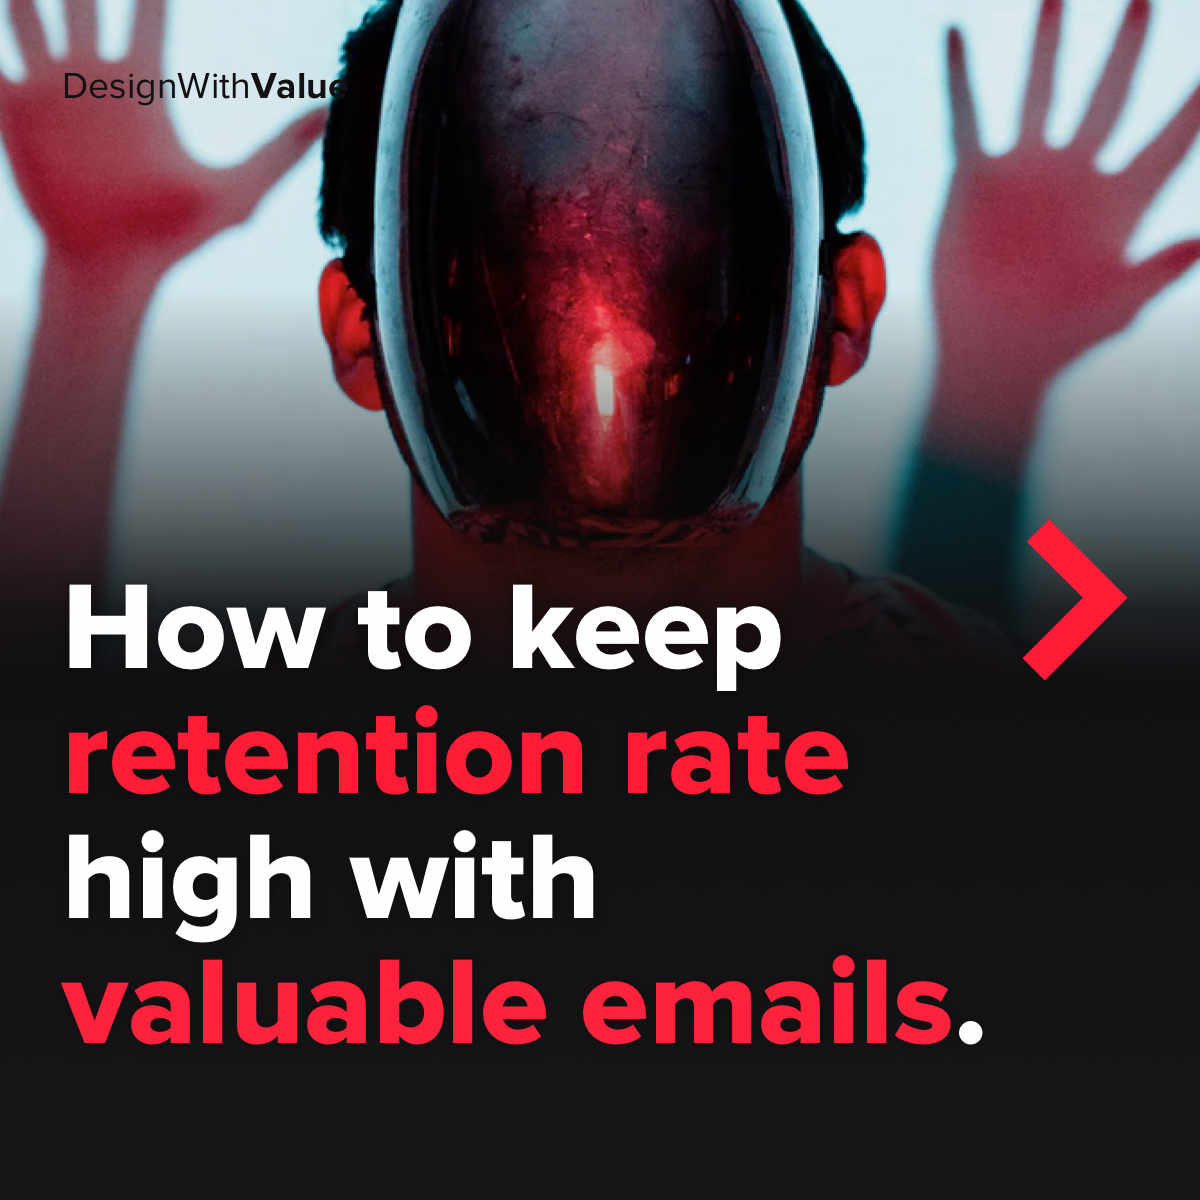 How to keep retention rate high with valuable emails.